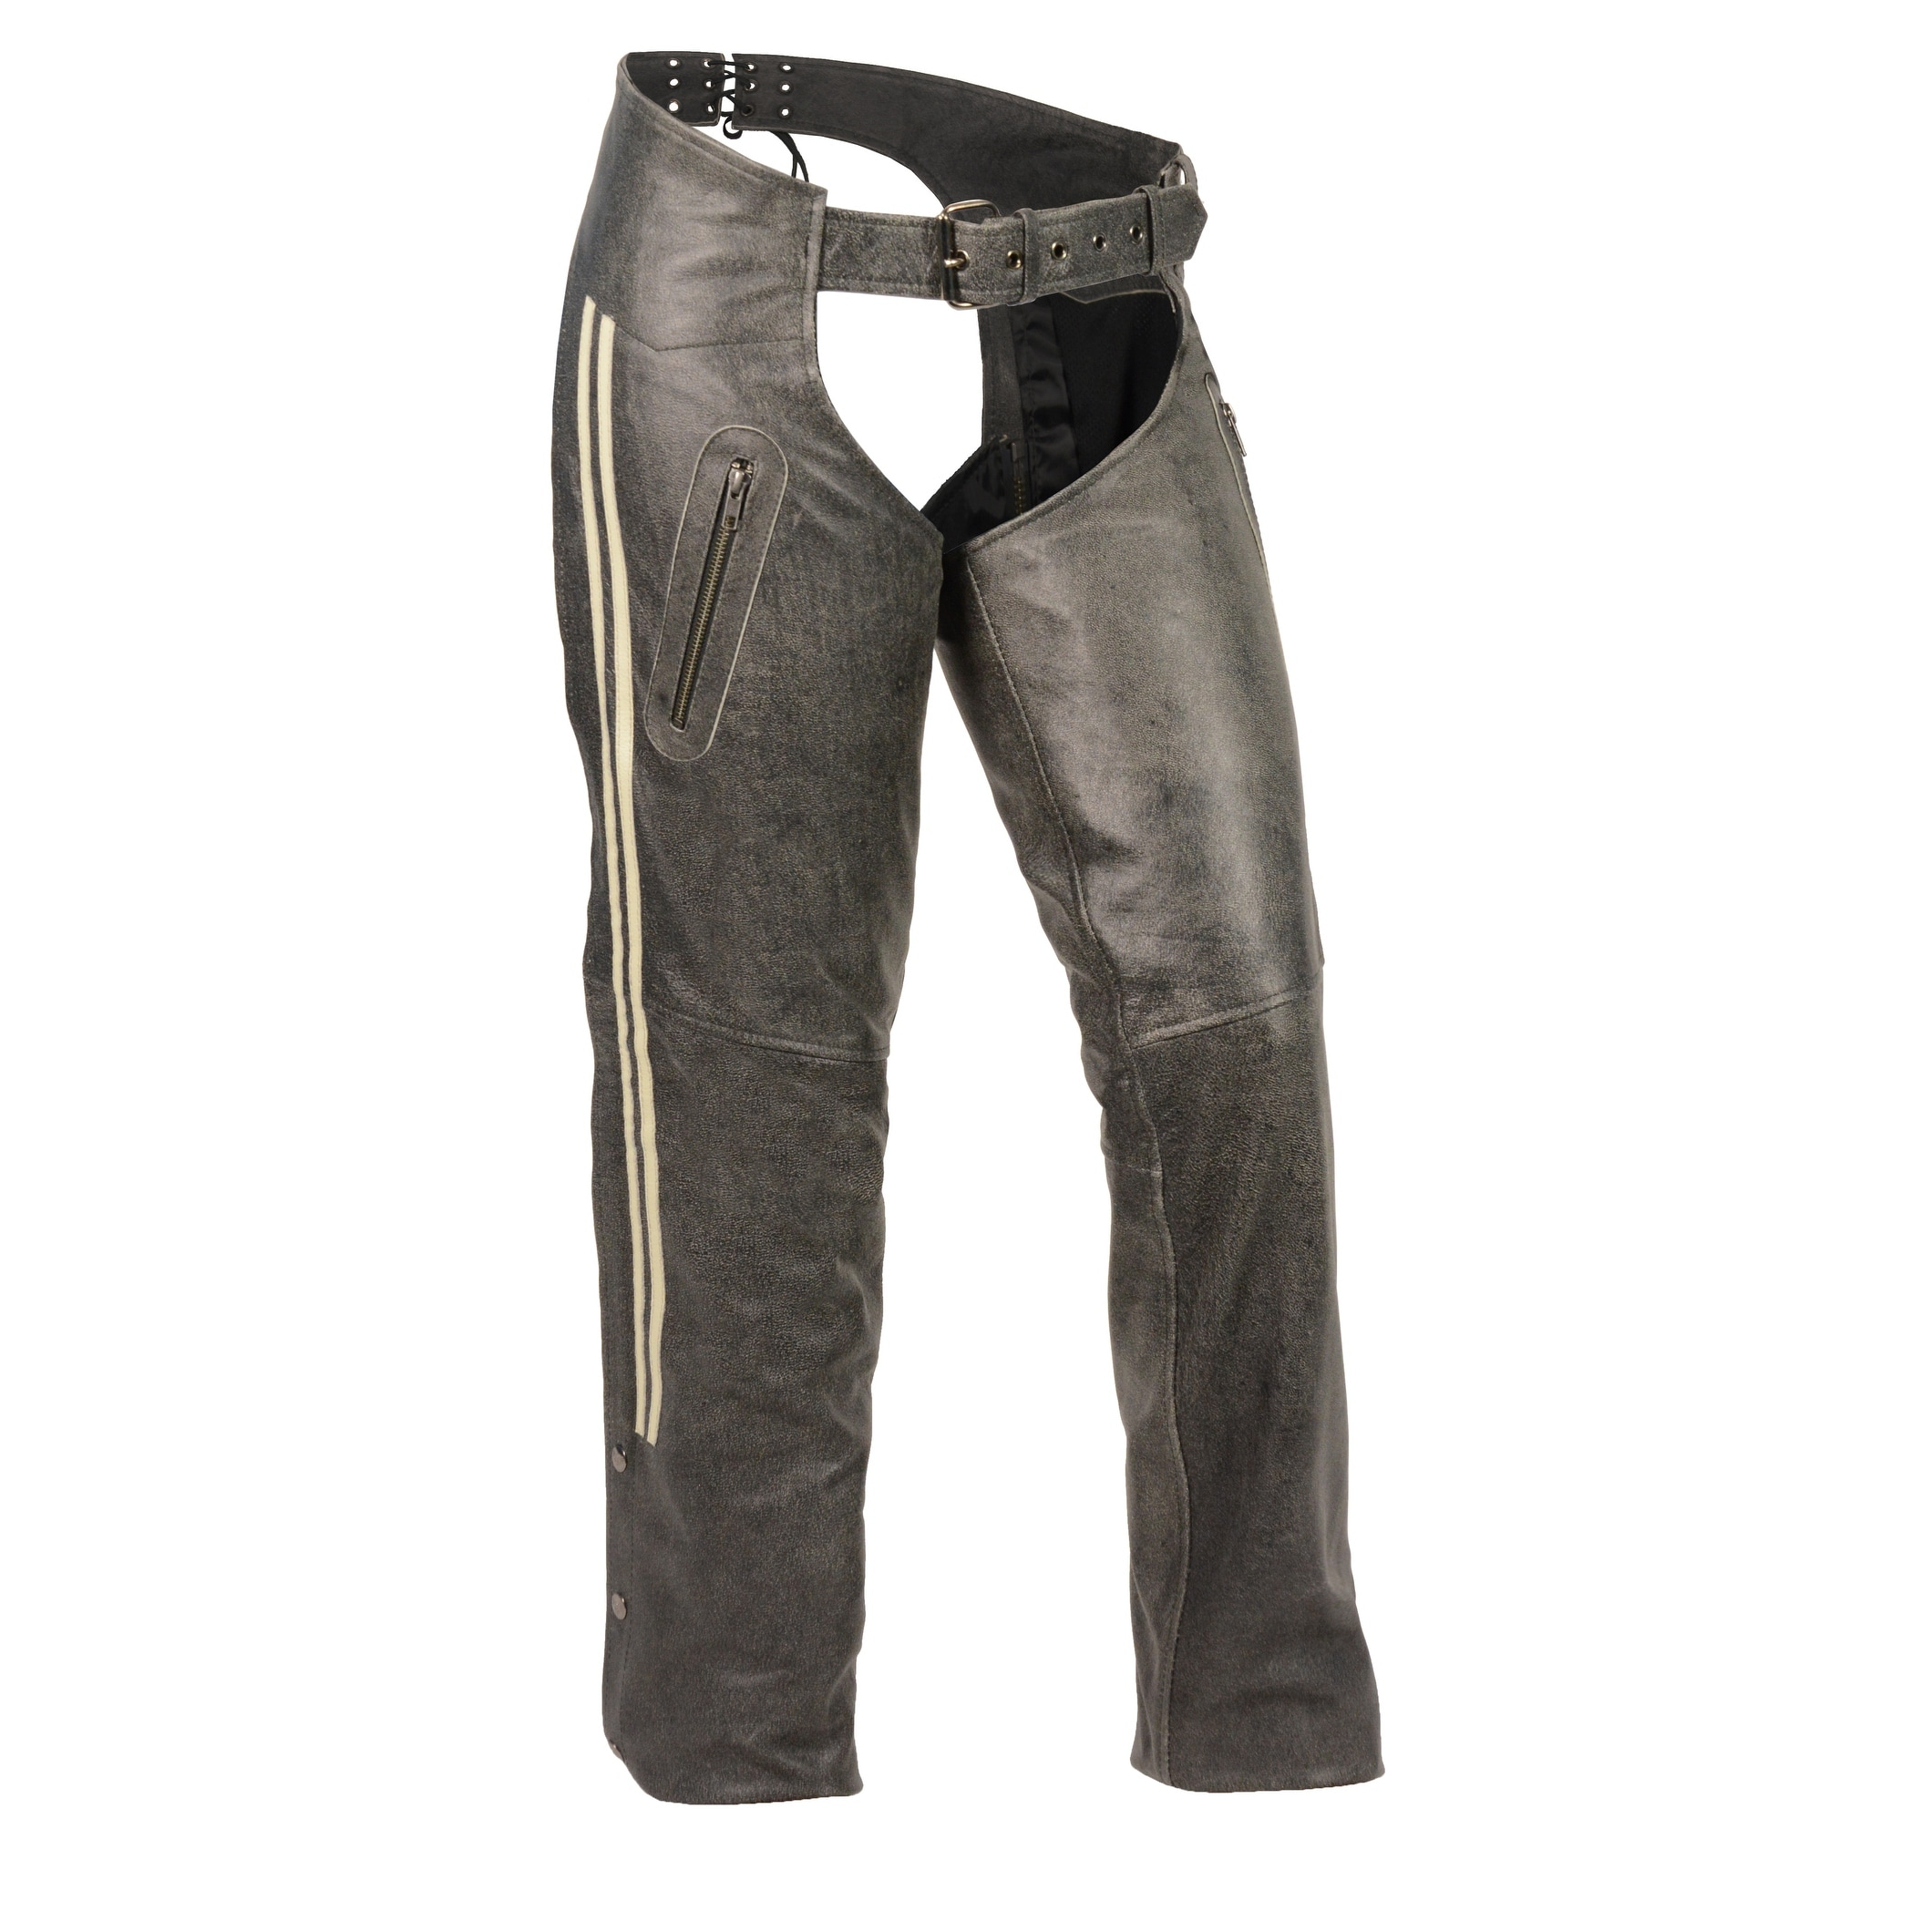 Ladies Black Lightweight Goatskin Leather Chaps w Lace and Grommet Details